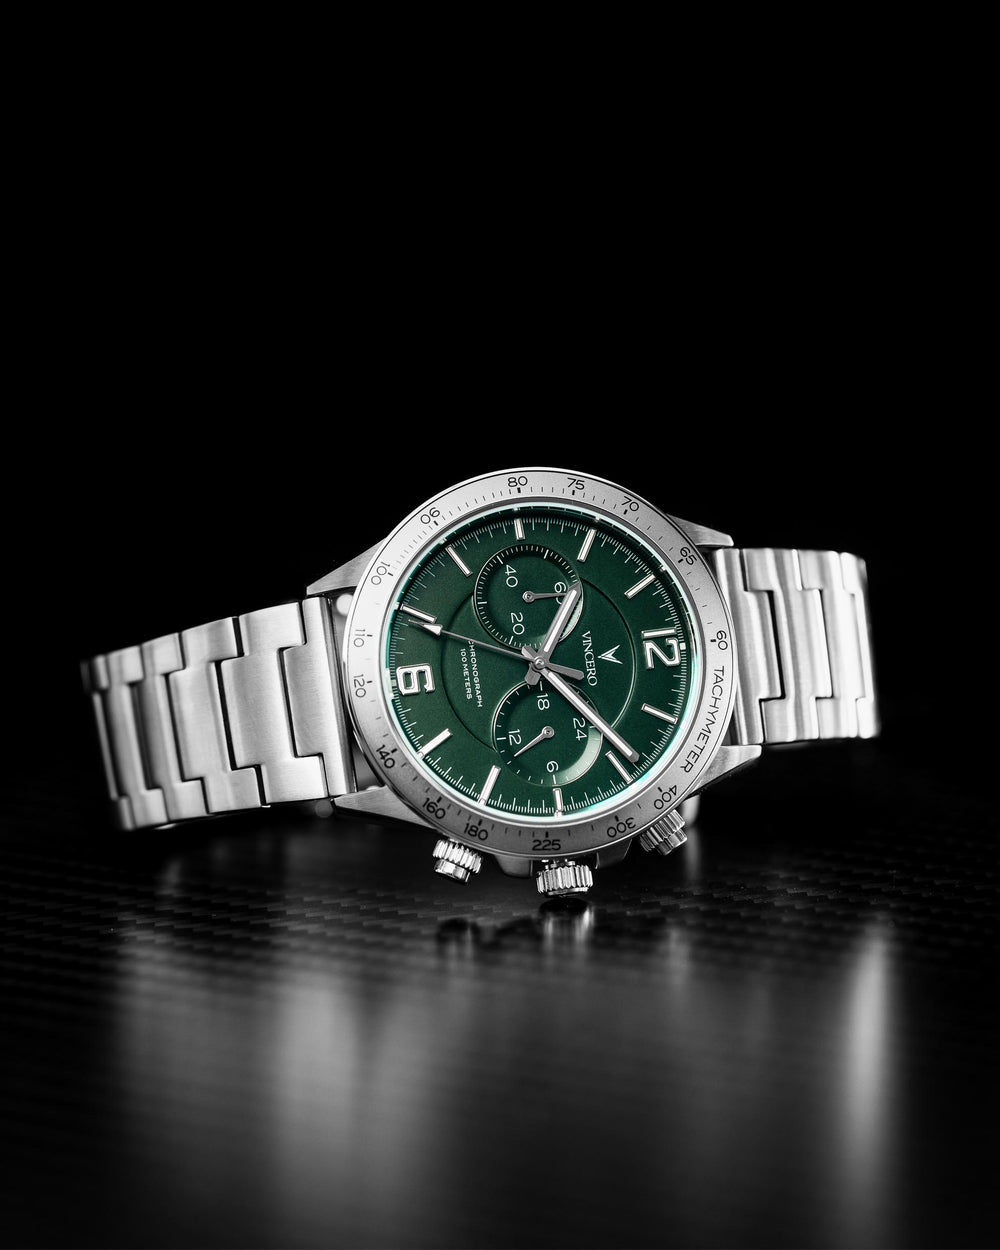 Apex Silver 316L Stainless Steel Strap Green Watch Face Silver Case Clasp Silver and White Accents